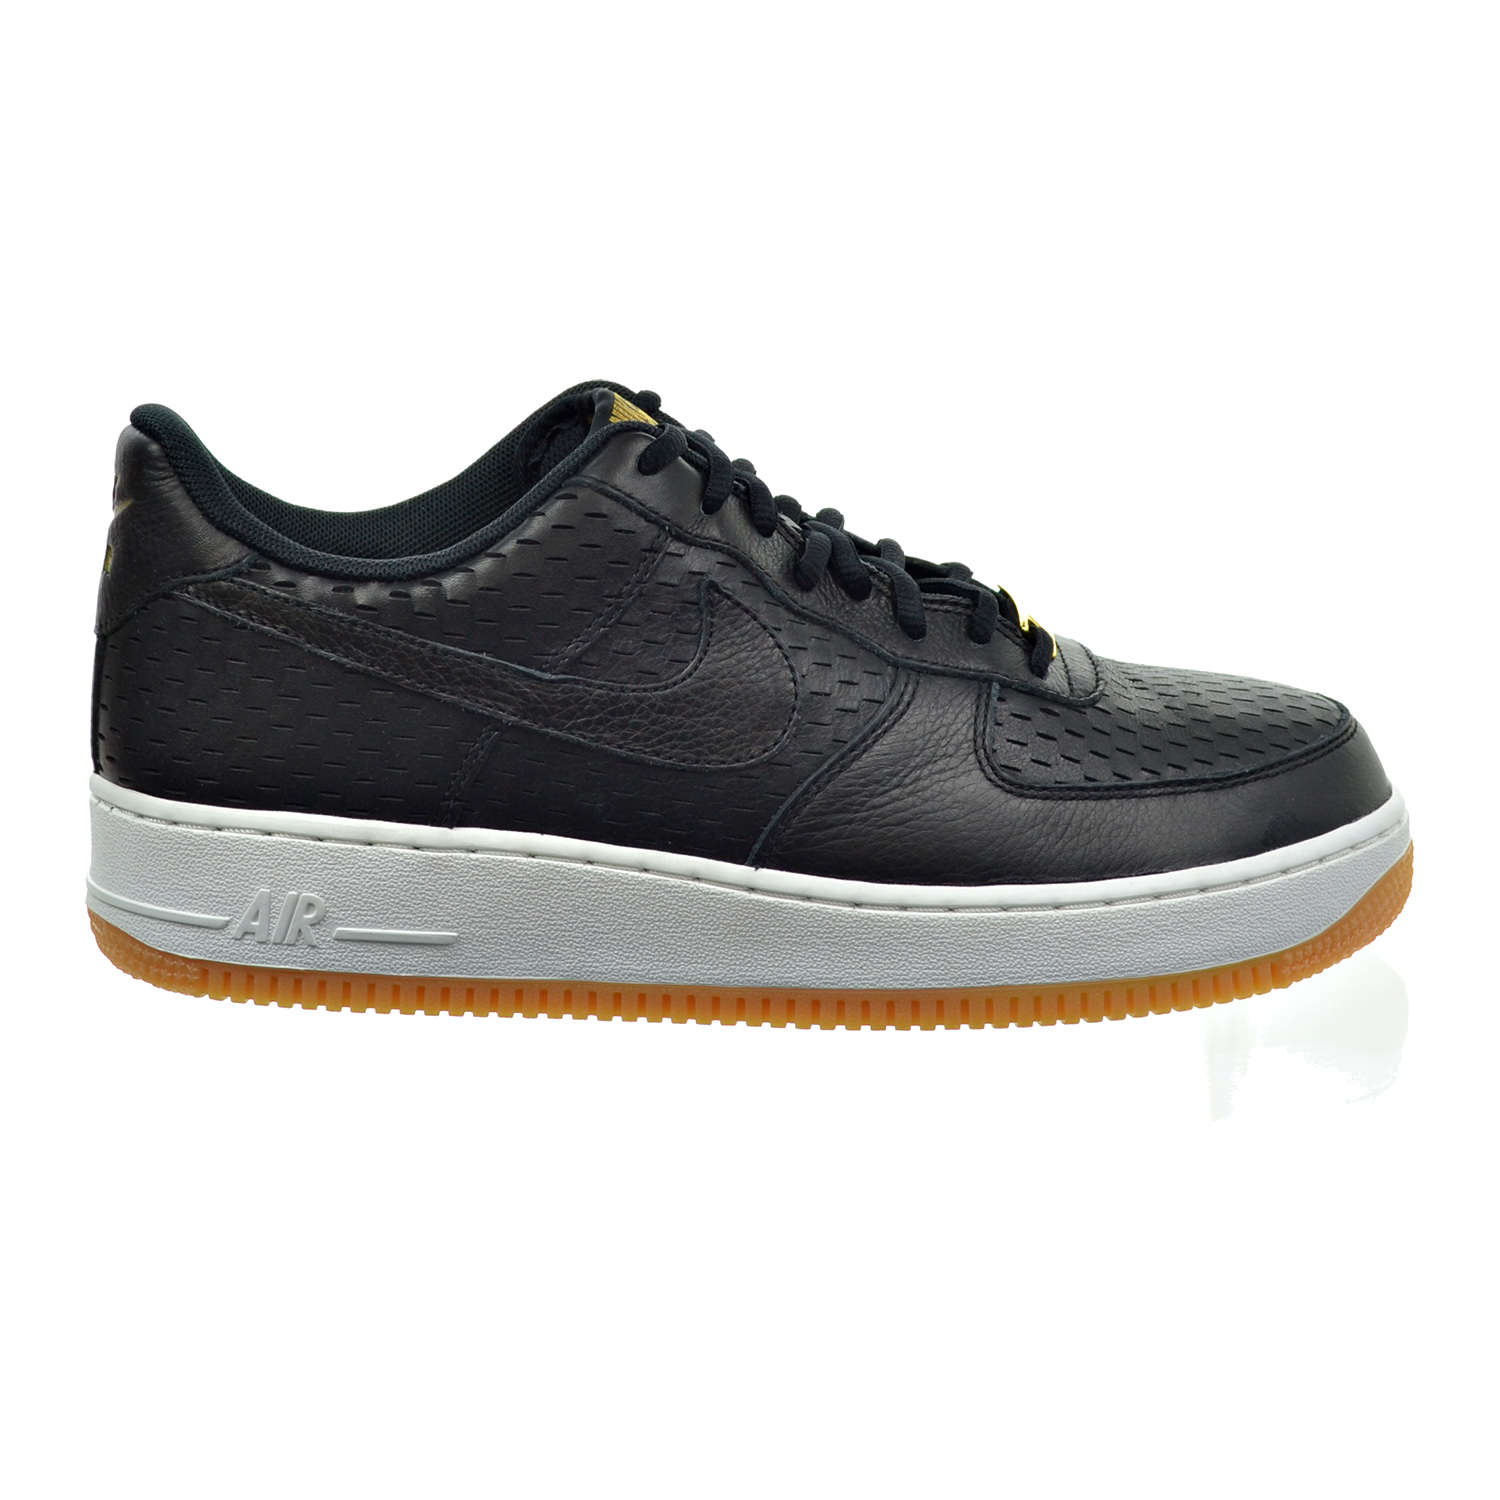 Nike Air Force 1 '07 Premium Women's Shoes Black/Summit W...